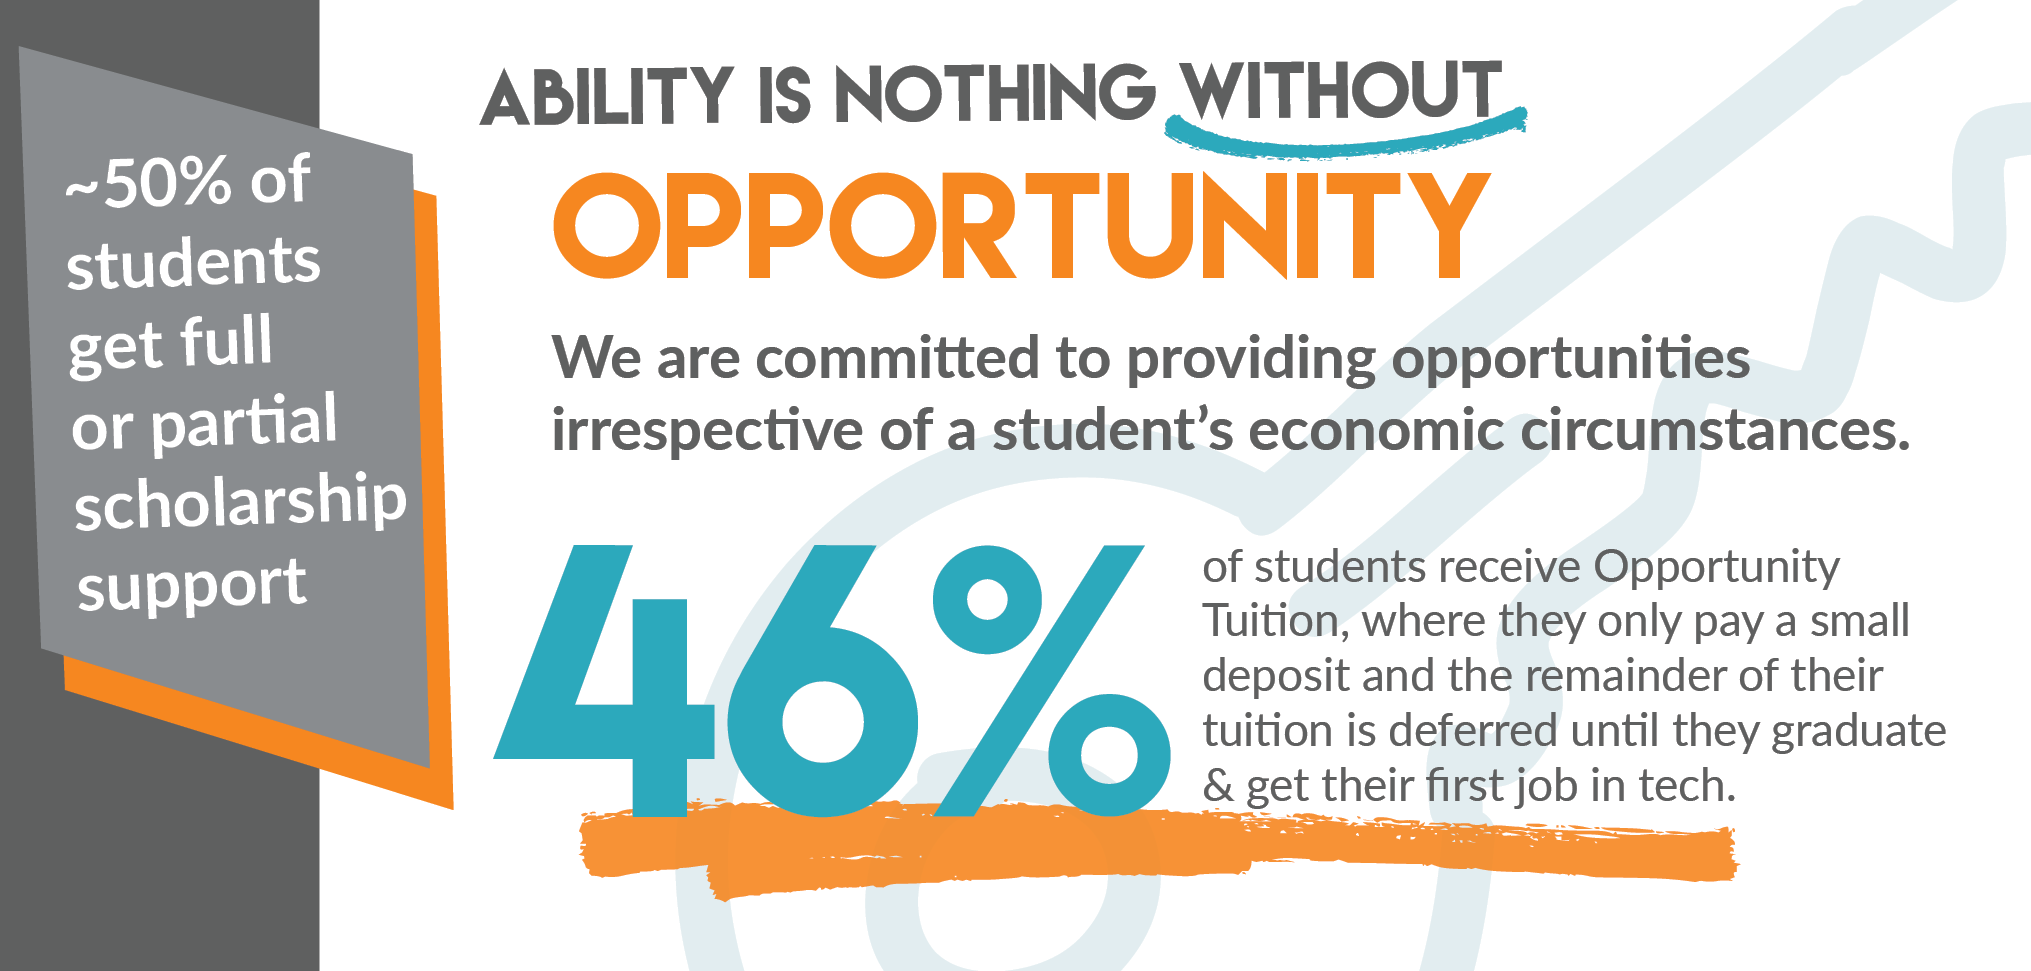 Ability is nothing without opportunity - approximately 50% of students get full or partial scholarship support